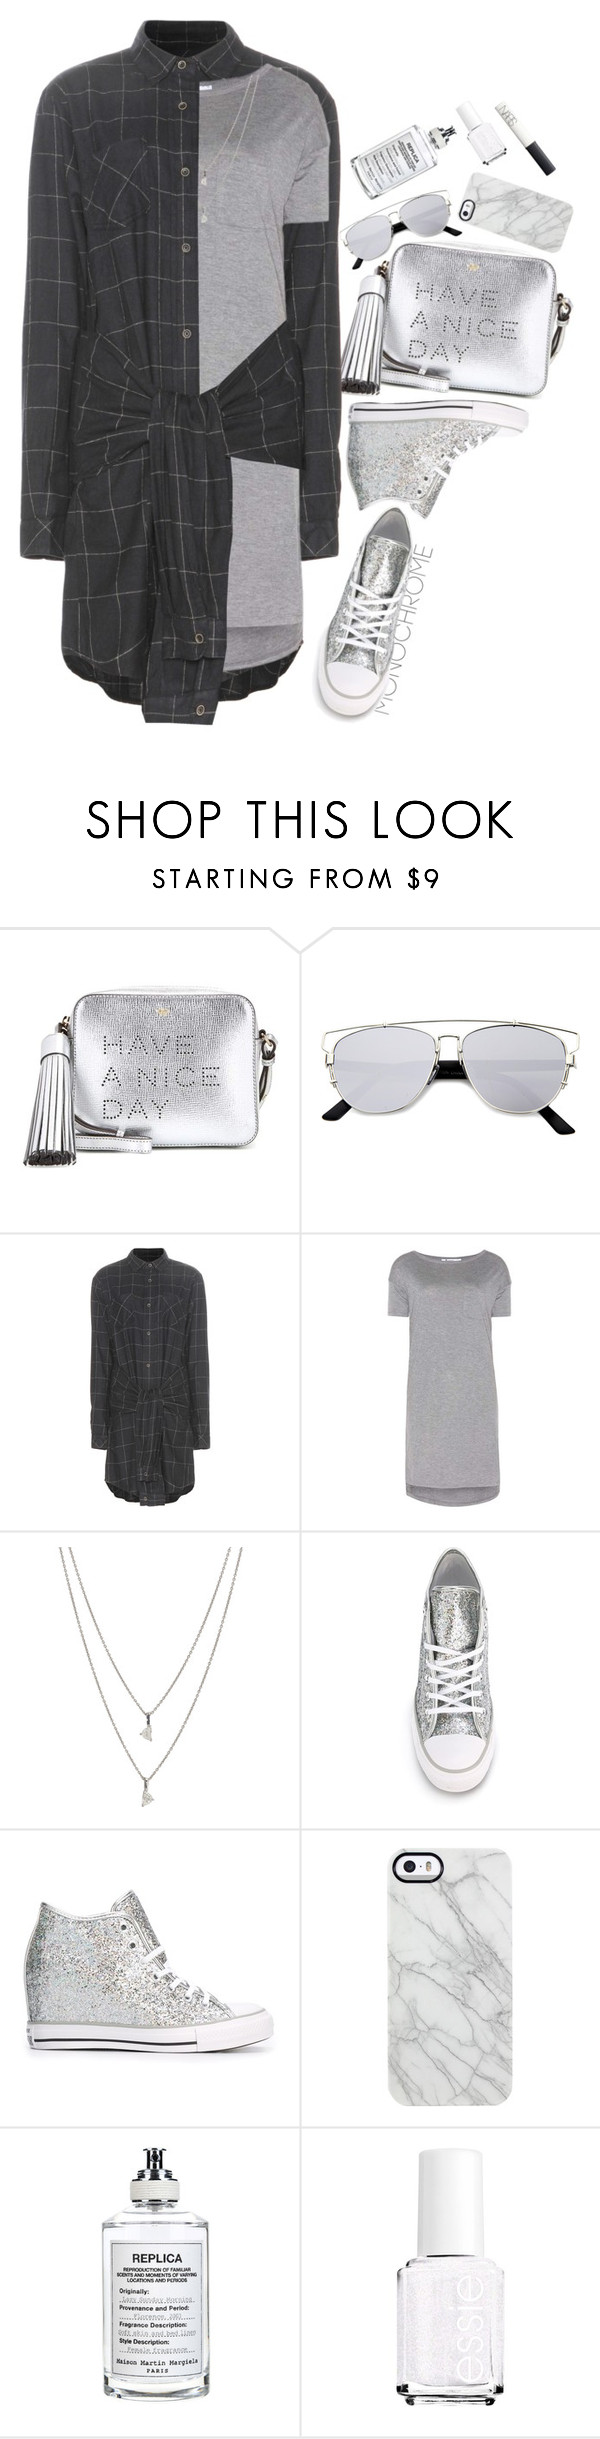 """MonoChromeTone"" by hollowpoint-smile ❤ liked on Polyvore featuring Anya Hindmarch, Current/Elliott, T By Alexander Wang, Maison Margiela, Converse, Uncommon, Essie and NARS Cosmetics"